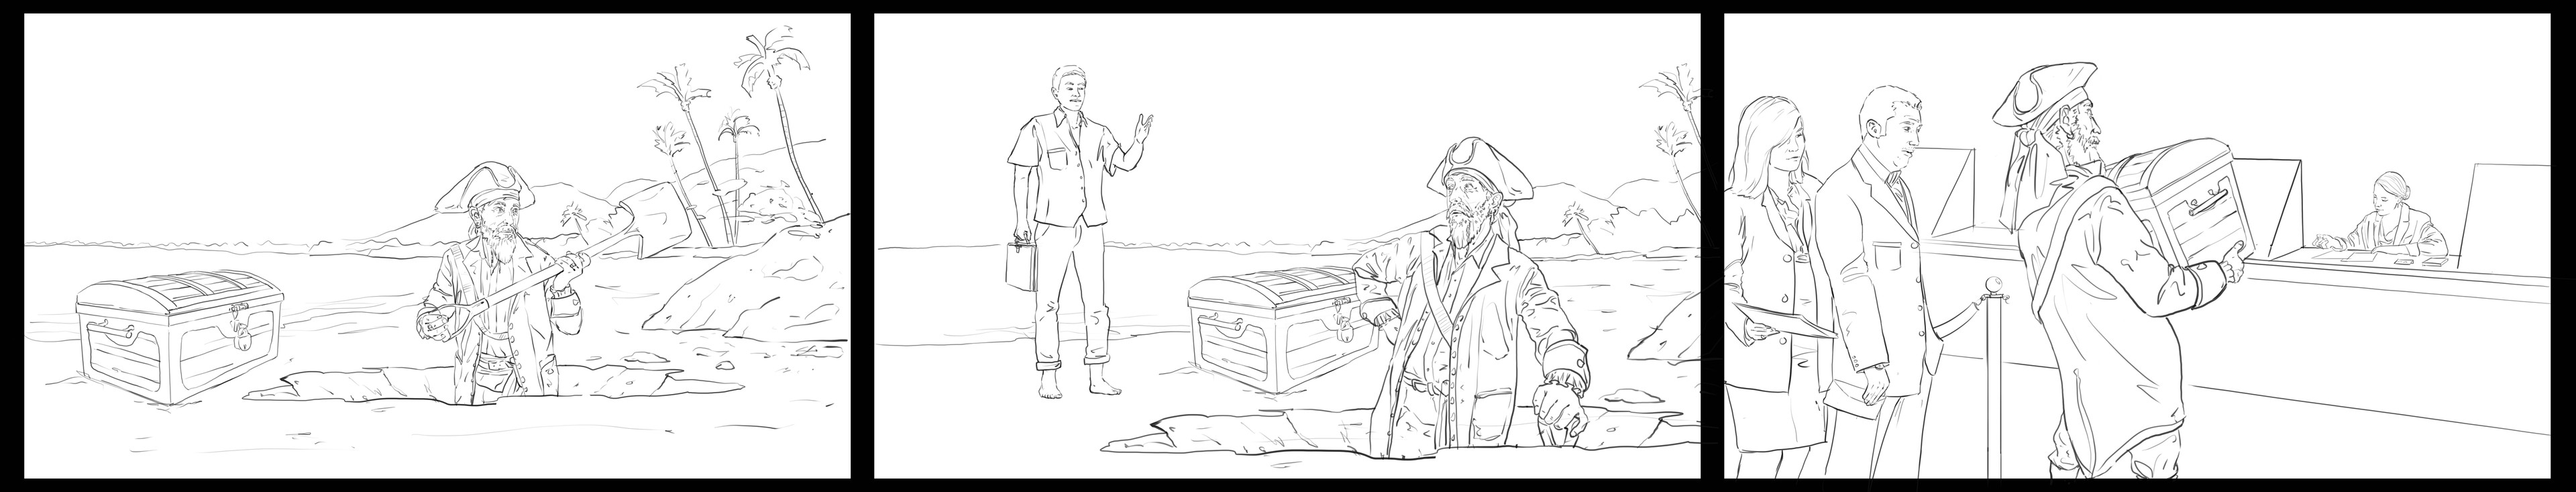 Pirate bank ad